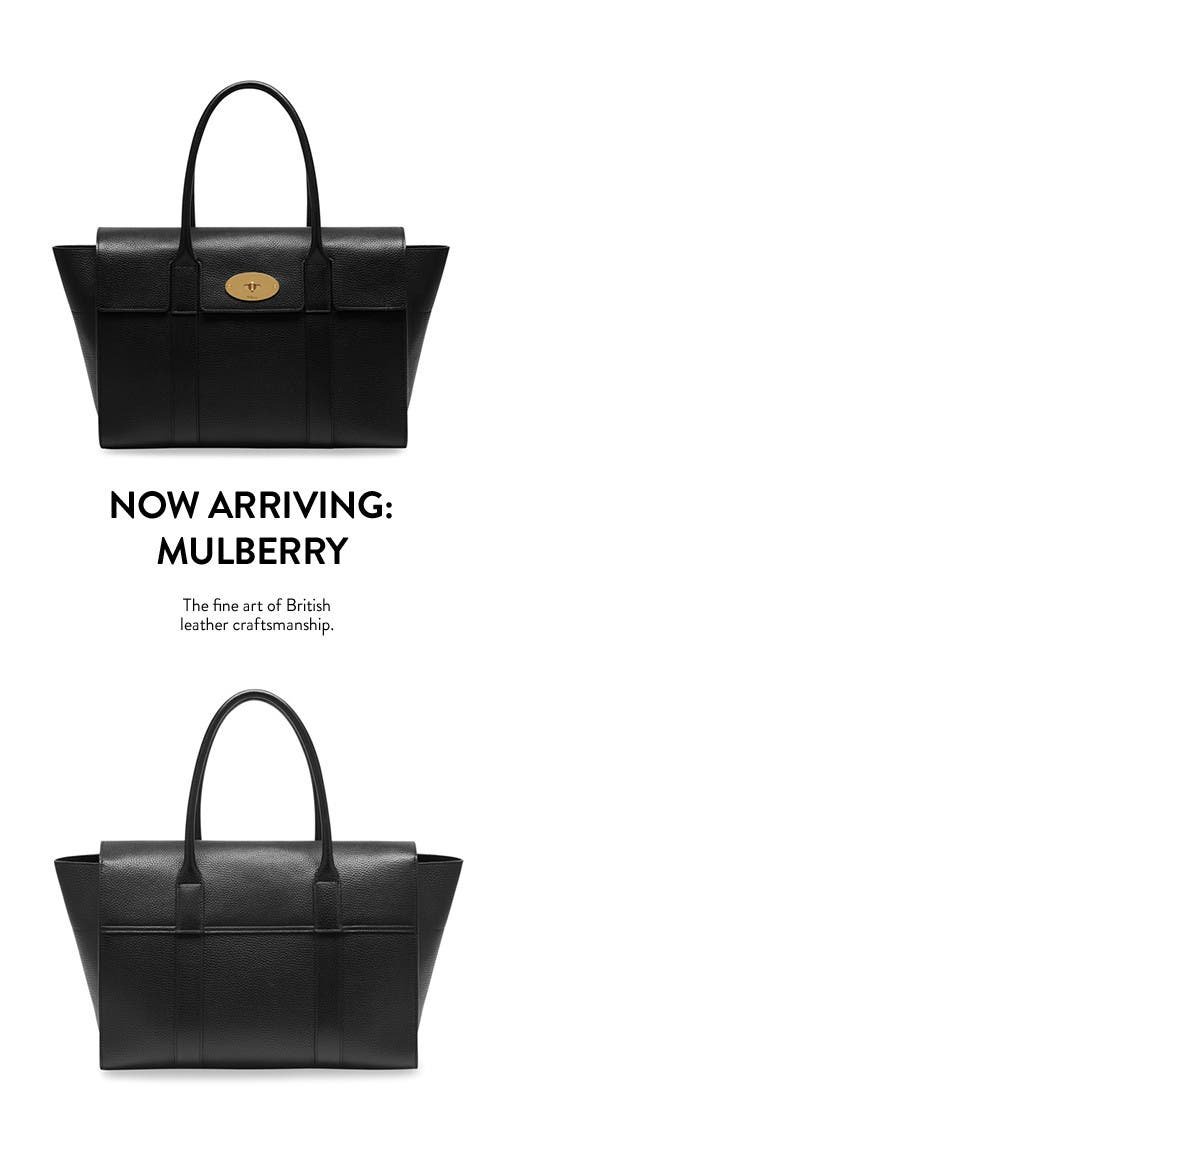 Now arriving: mulberry handbags.